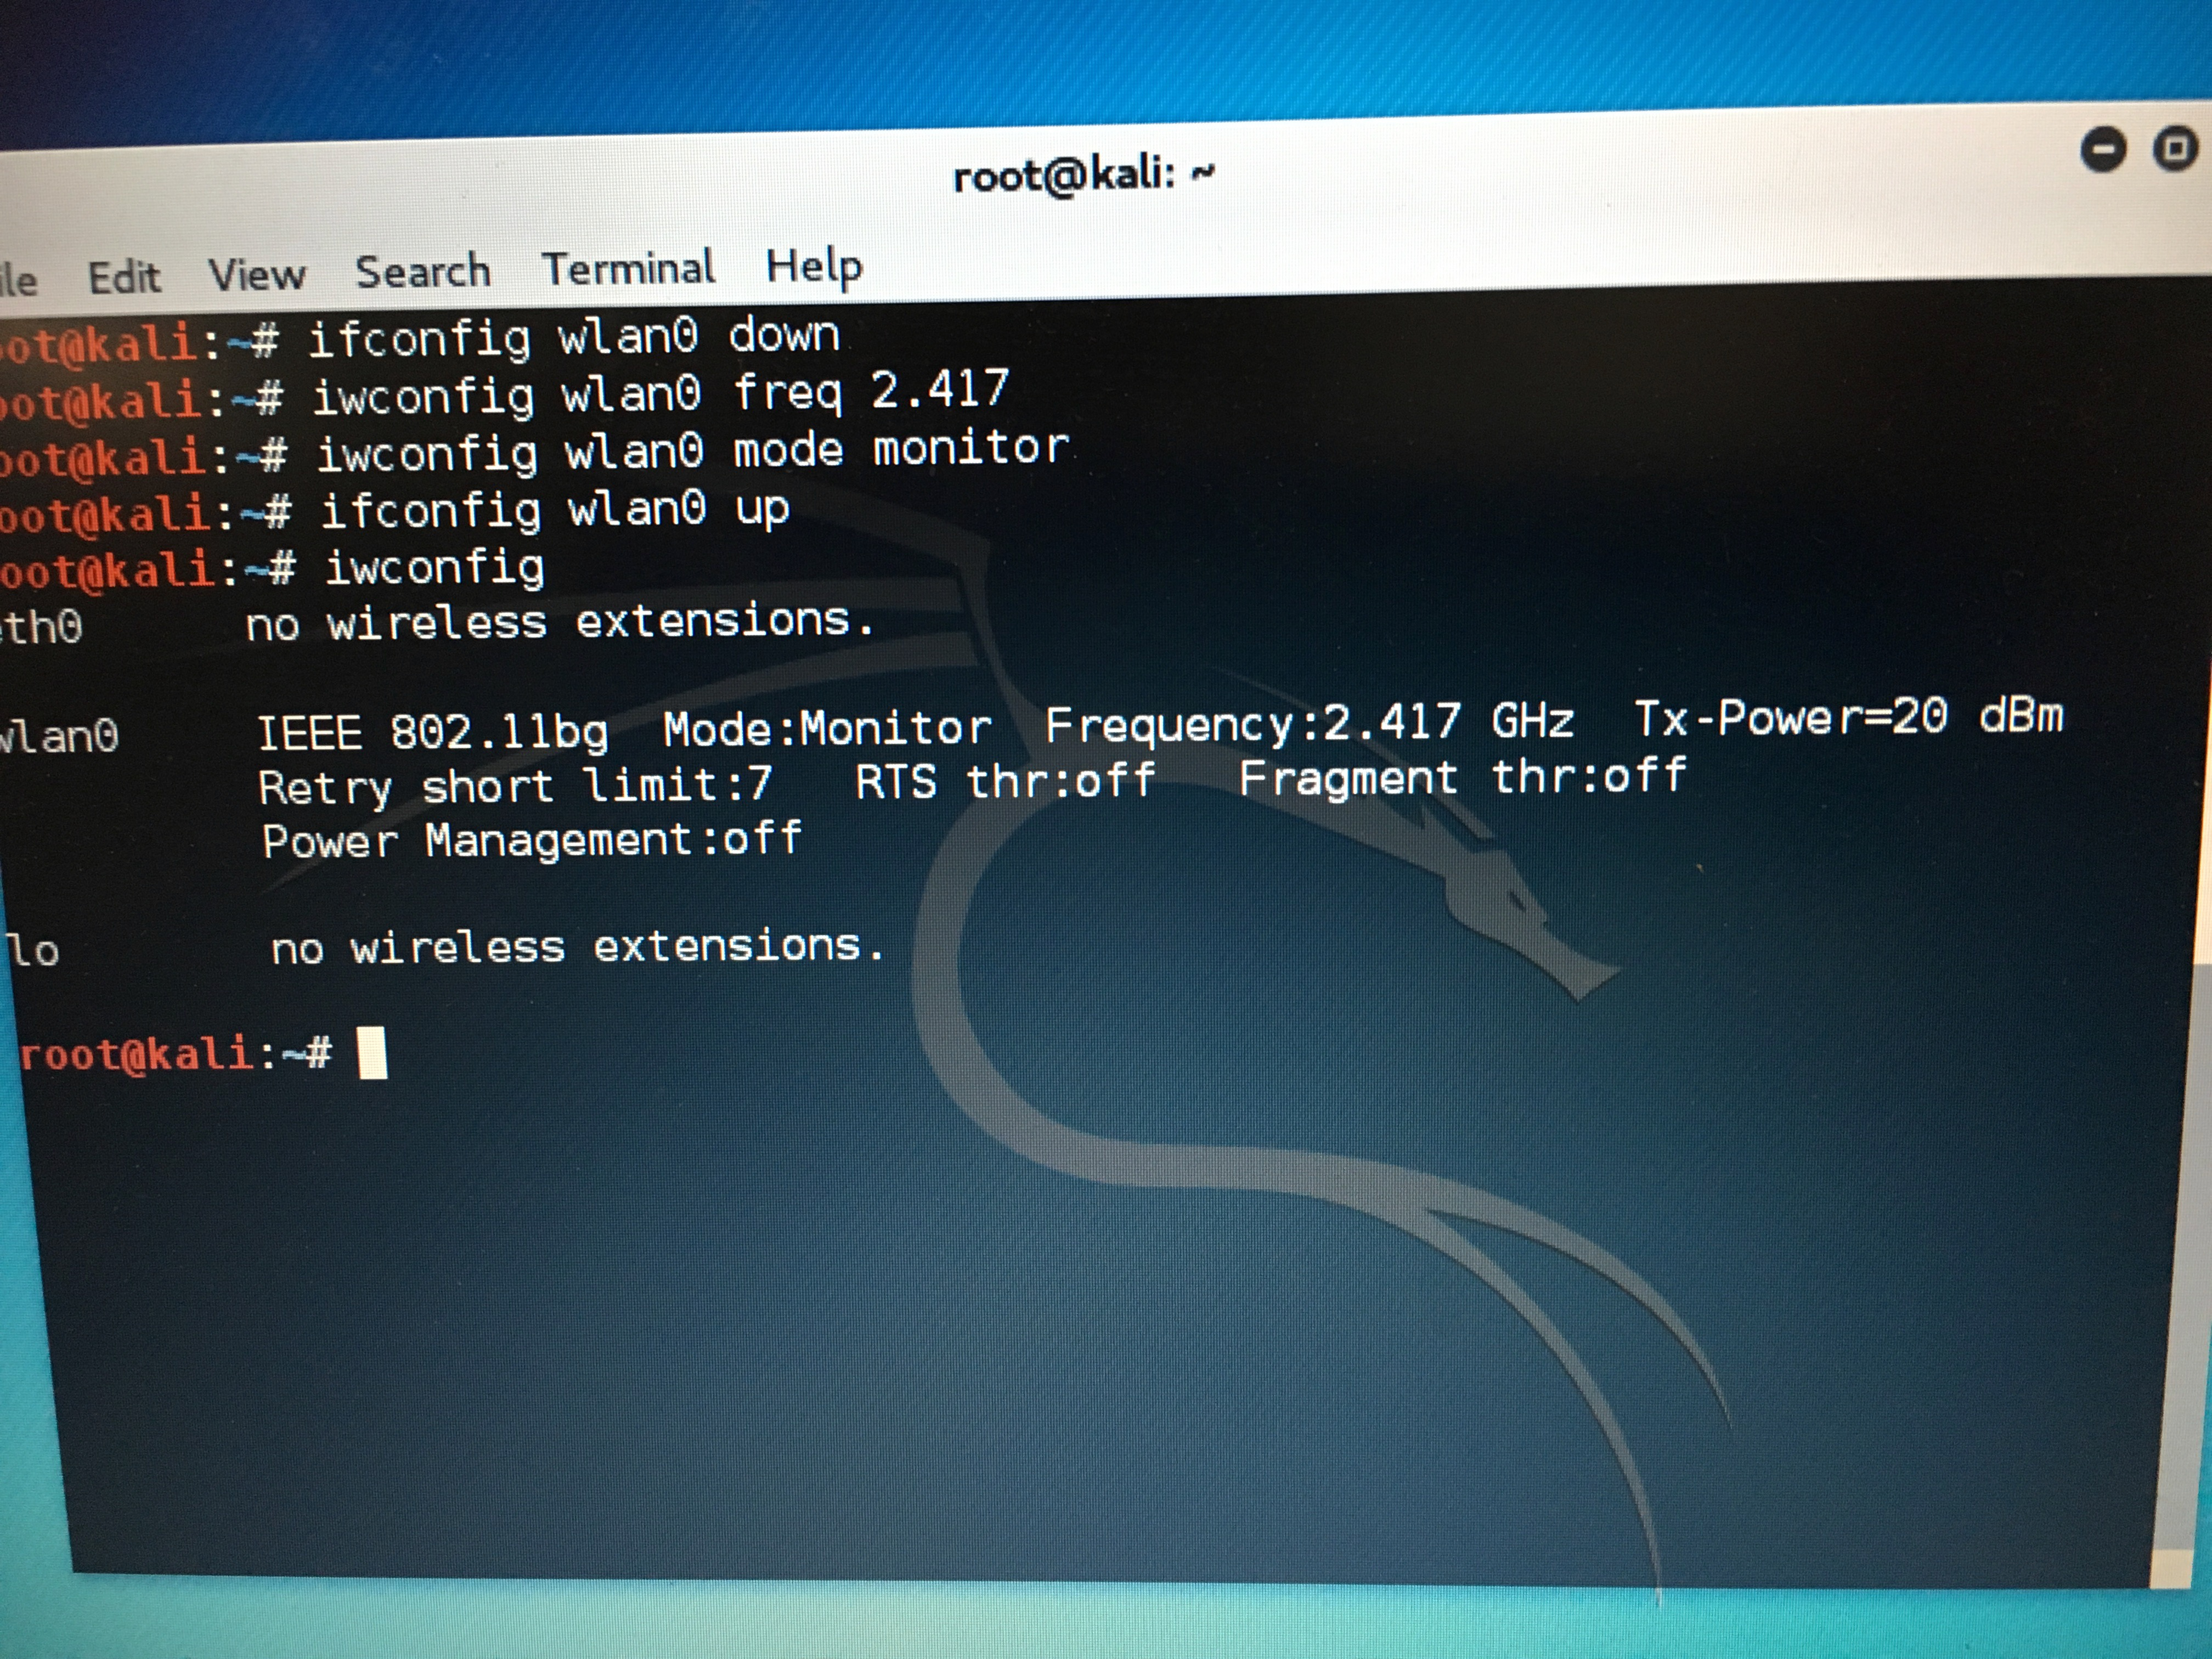 CellStream - Capturing Wi-Fi WLAN Packets in Wireshark on Linux